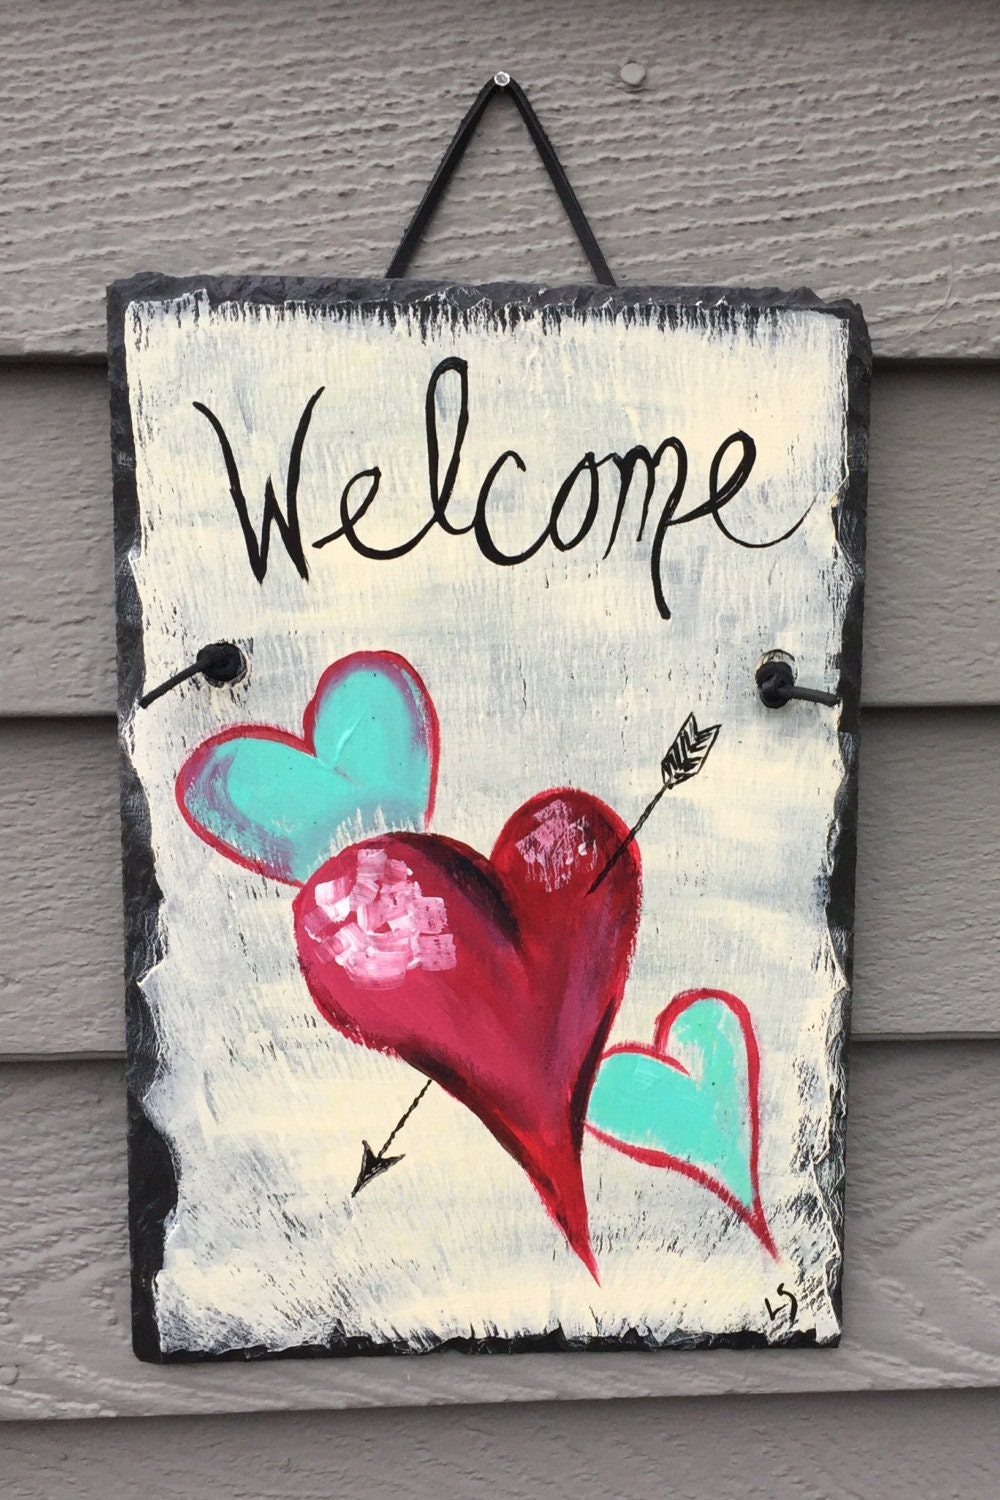 Sale Valentines Day Slate Heart Door Hanging Valentine Heart Valentine Day Decor Valentine Decor  Roof Slate Welcome Sign